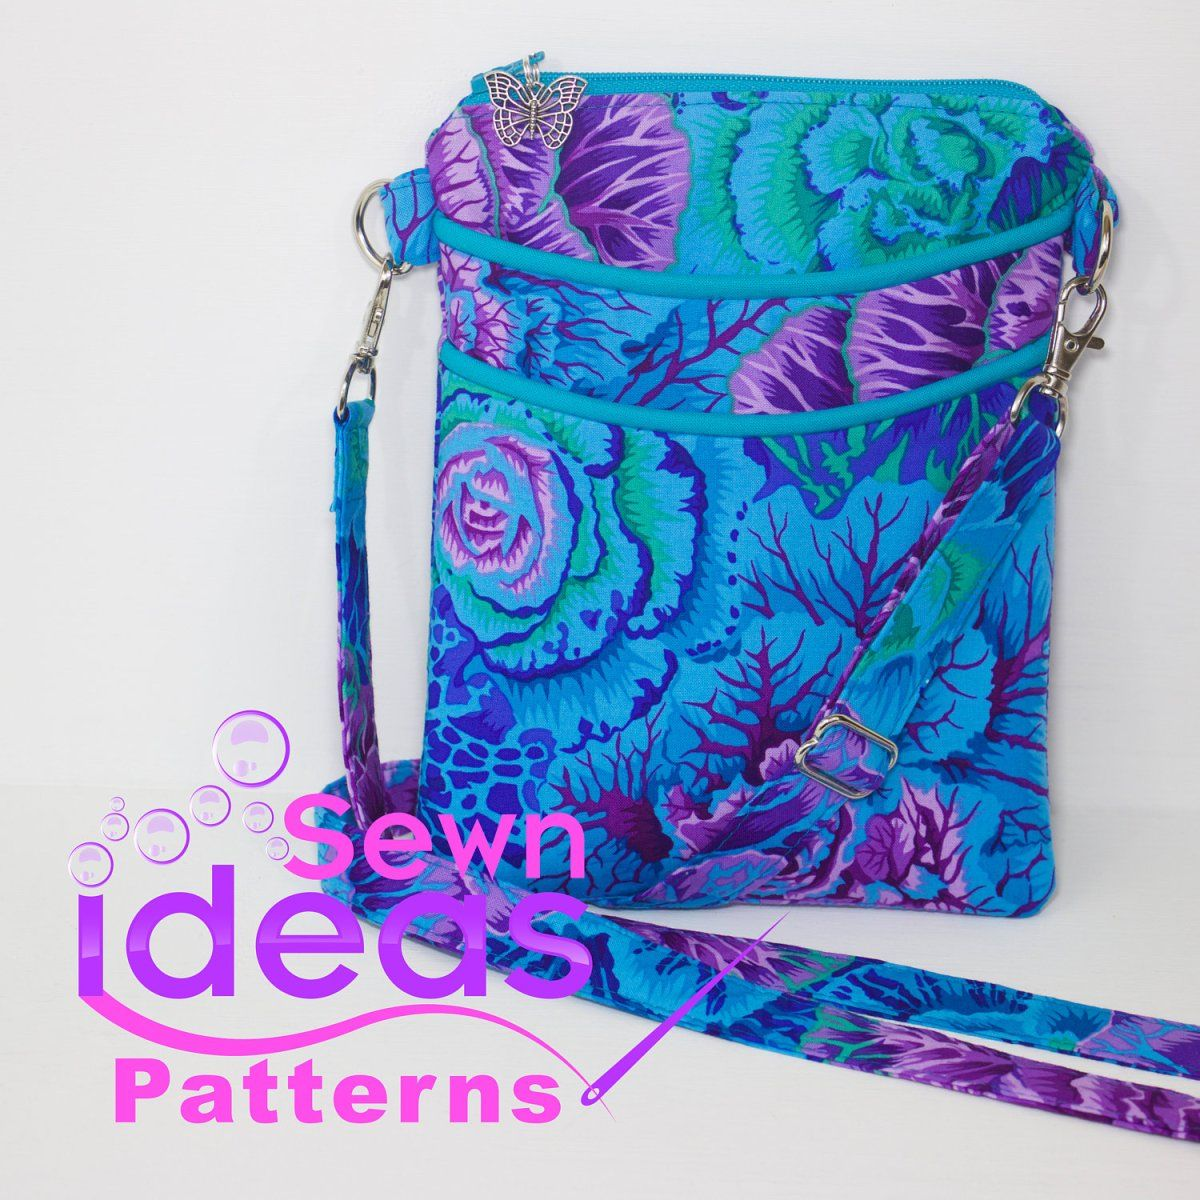 Easy Access Cross Body Bag - Sew and Sell! | Pinterest | Nähen